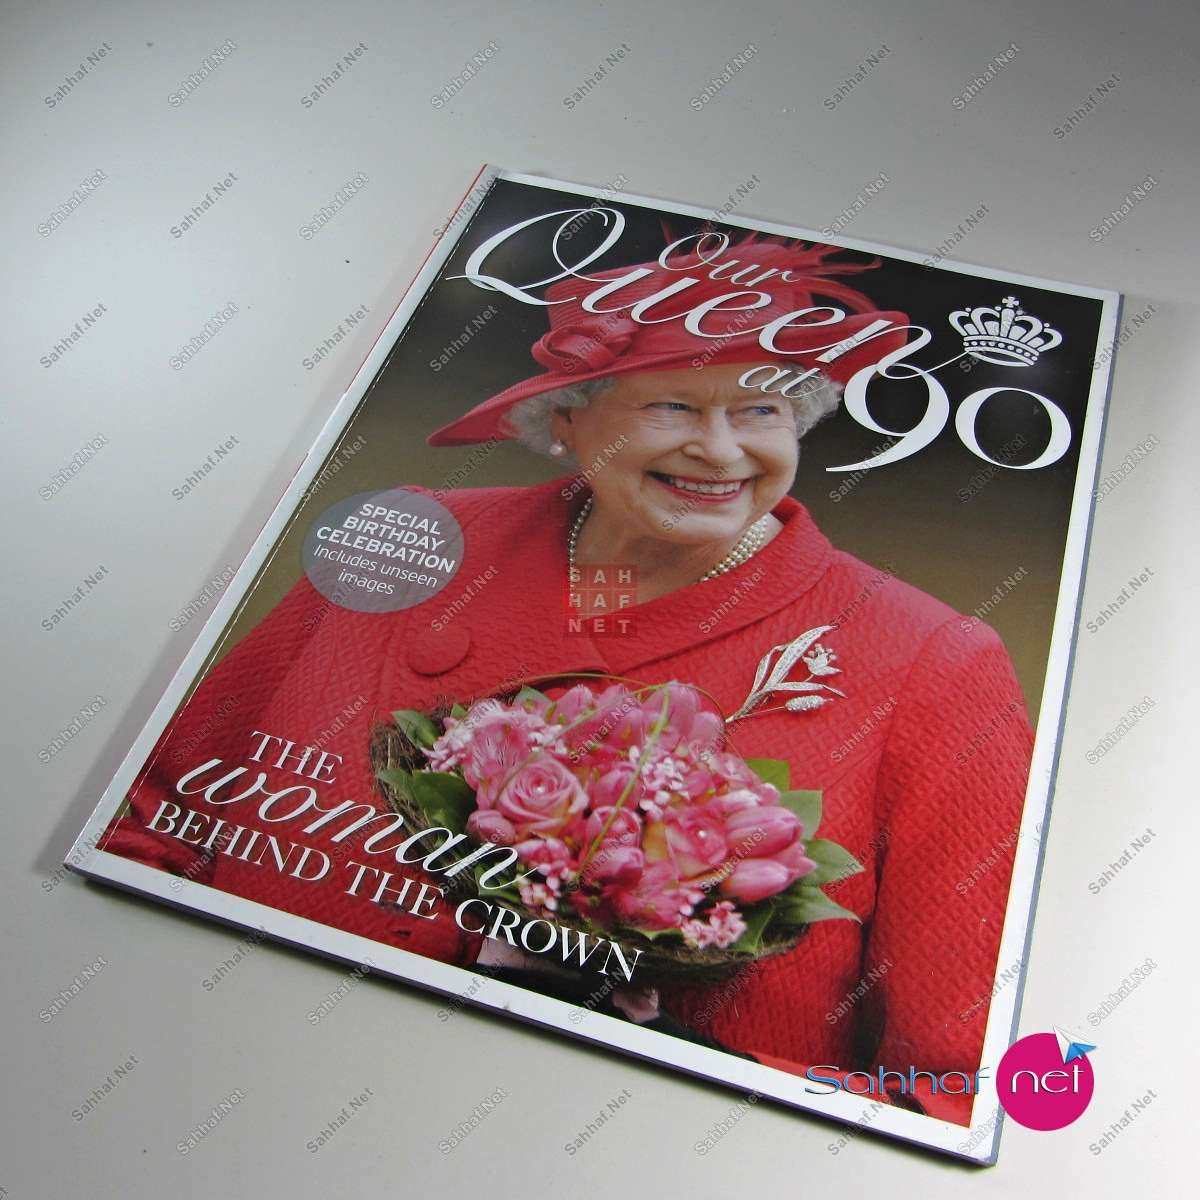 OUR QUEEN AT 90 Dergi